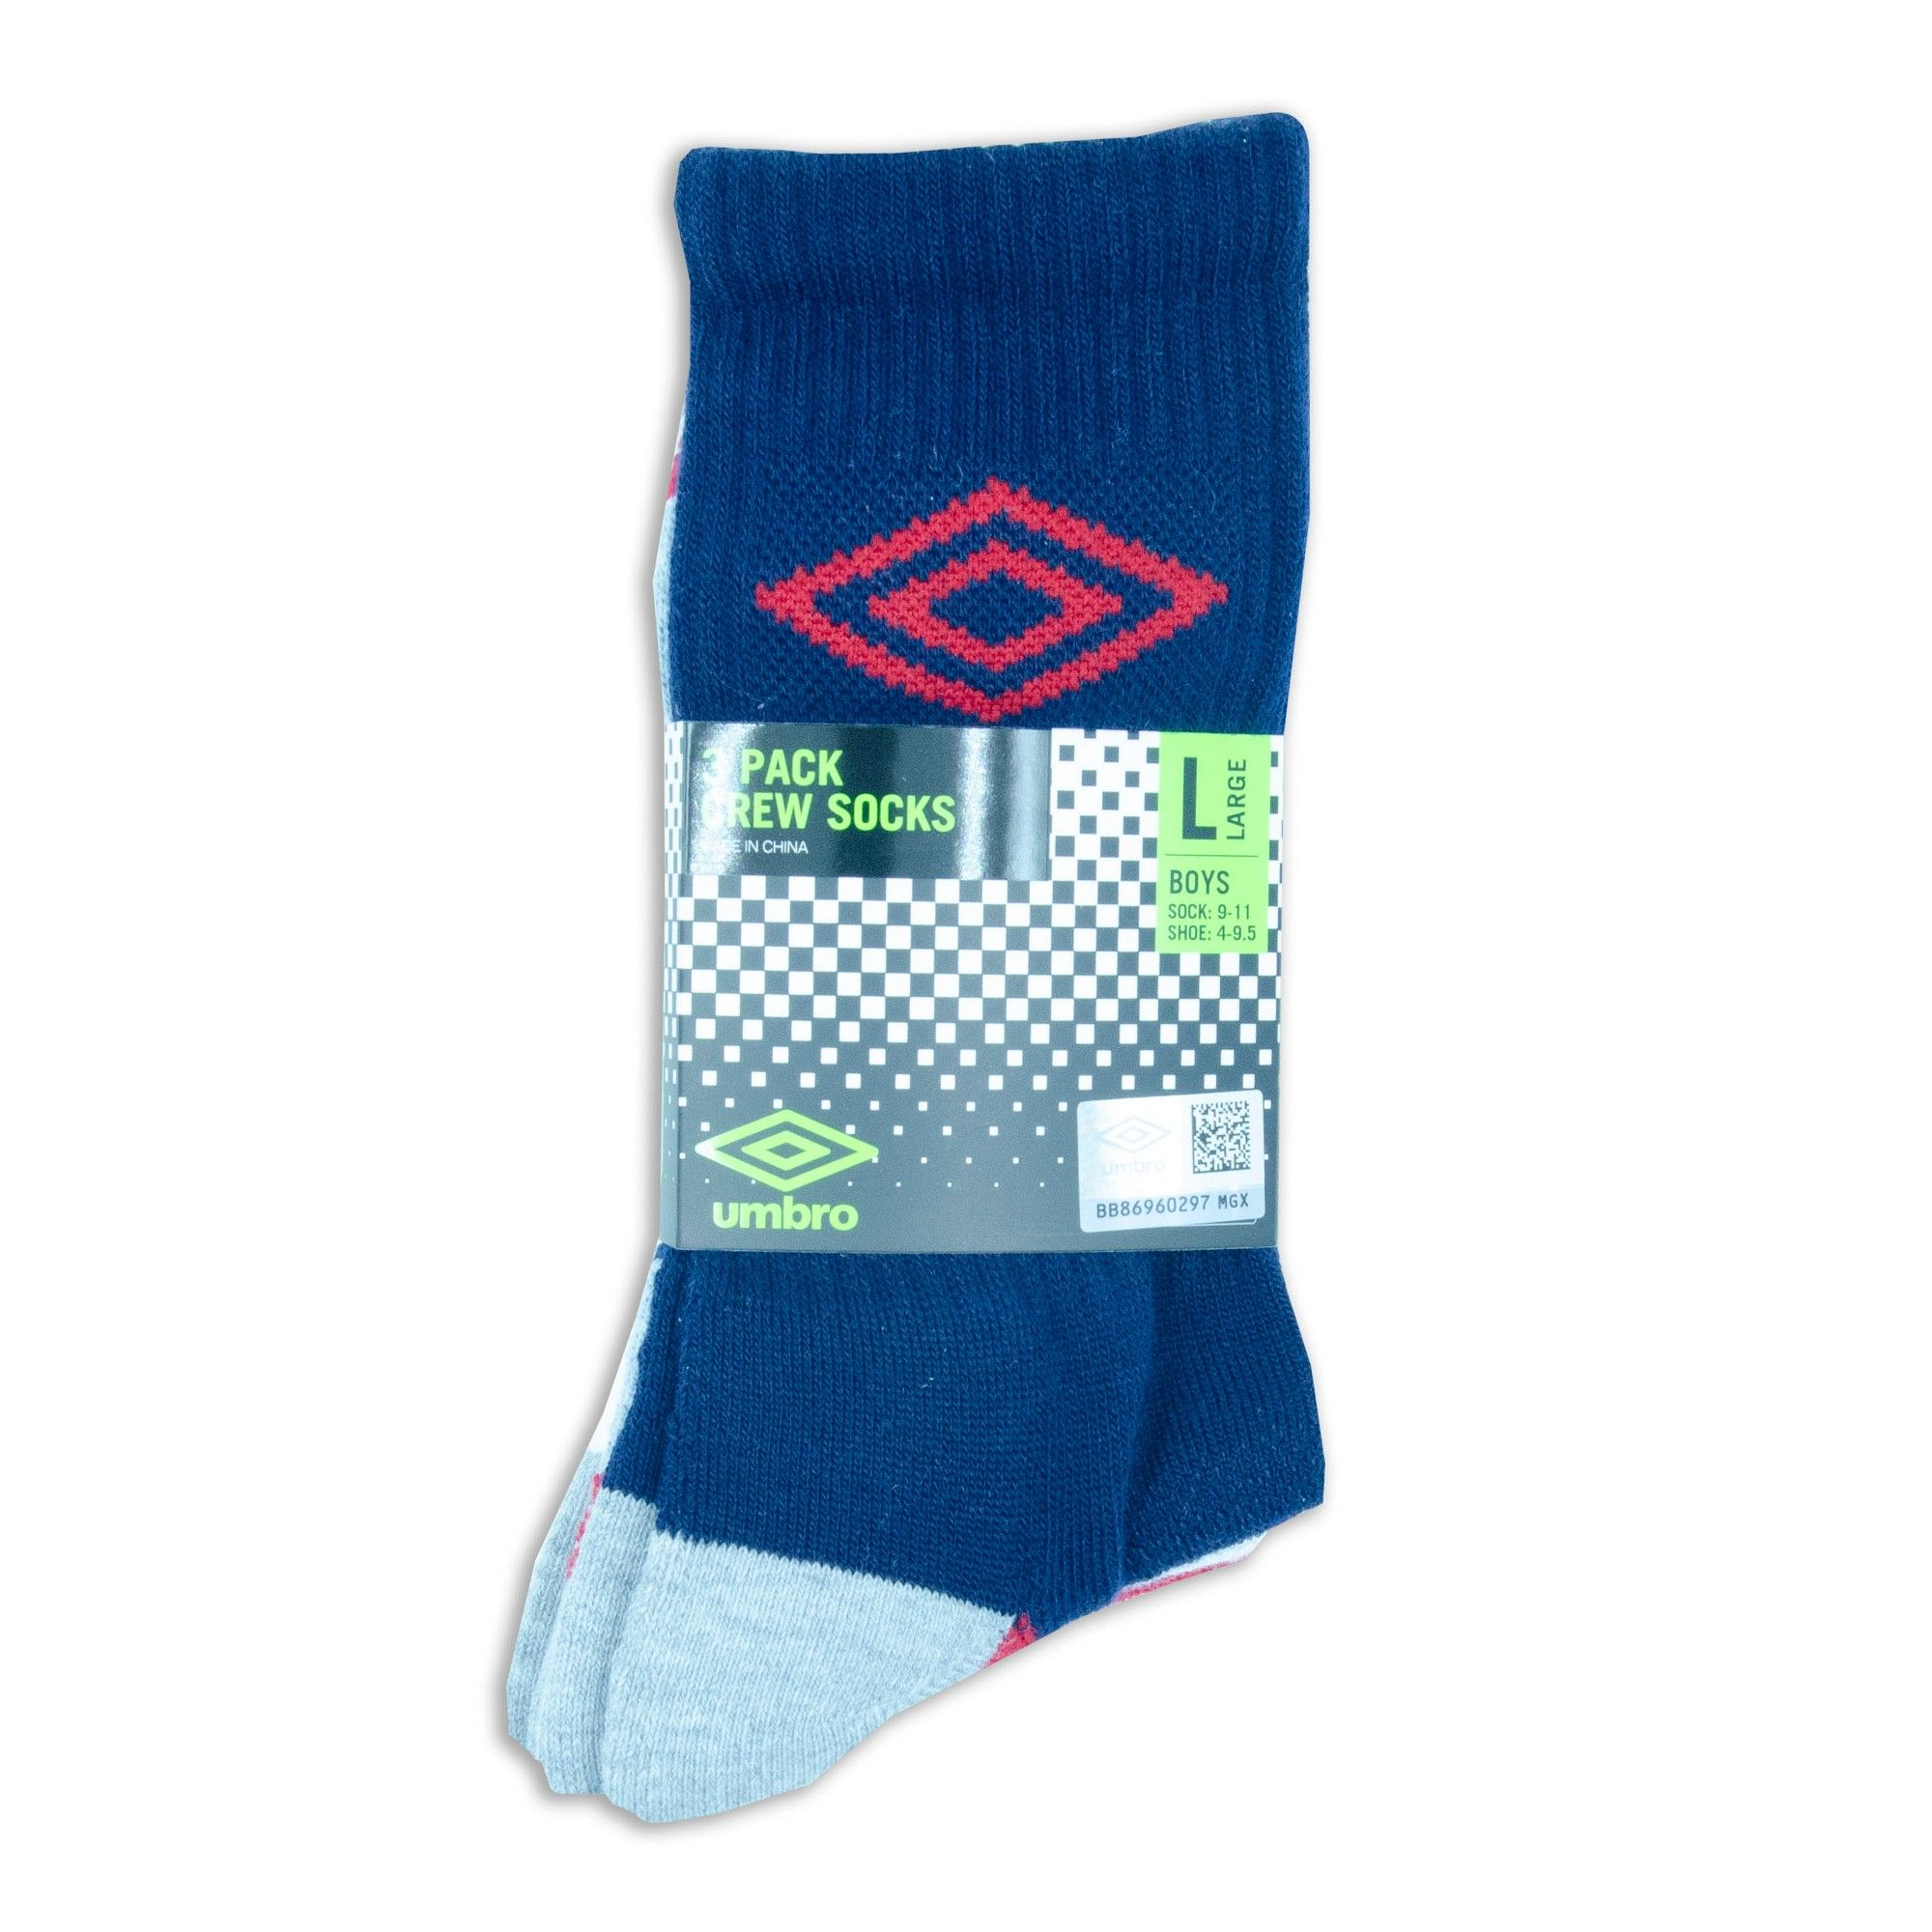 POLO RALPH LAUREN NEW KIDS BOYS BLUE ATHLETIC SPORT HIGH CREW SOCKS 9-11